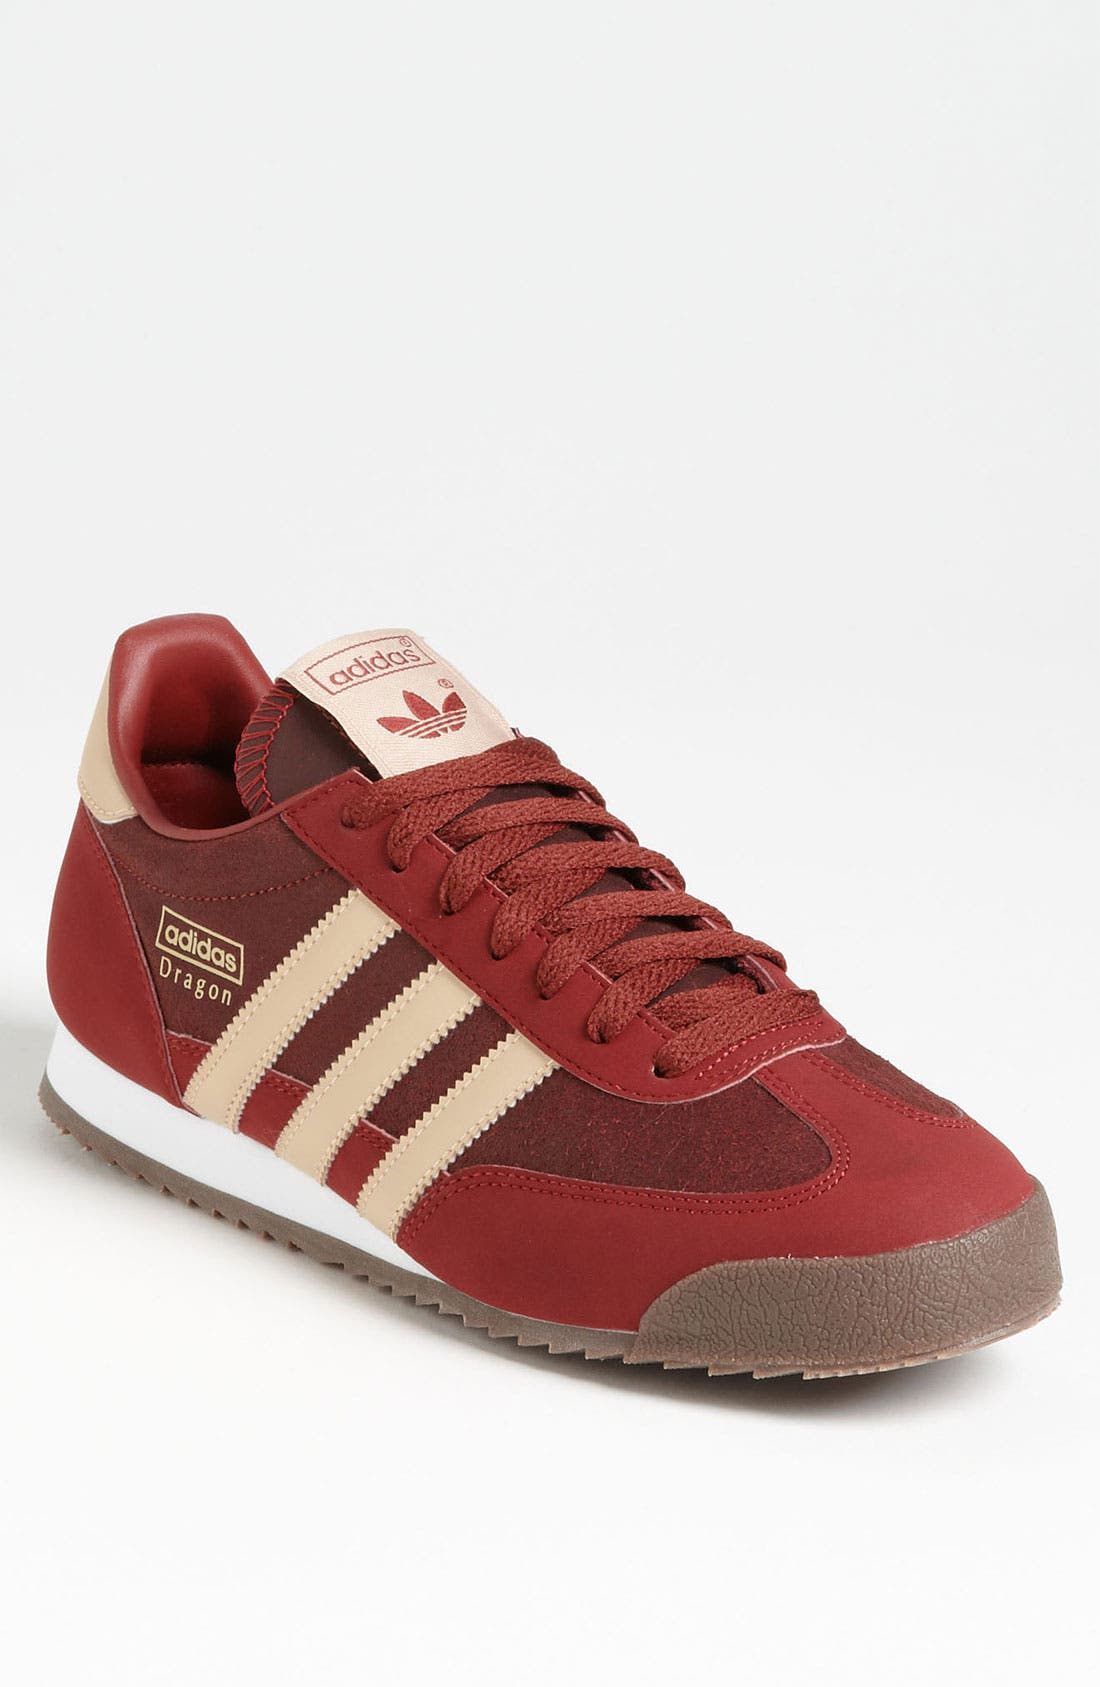 Alternate Image 1 Selected - adidas 'Dragon' Sneaker (Men)